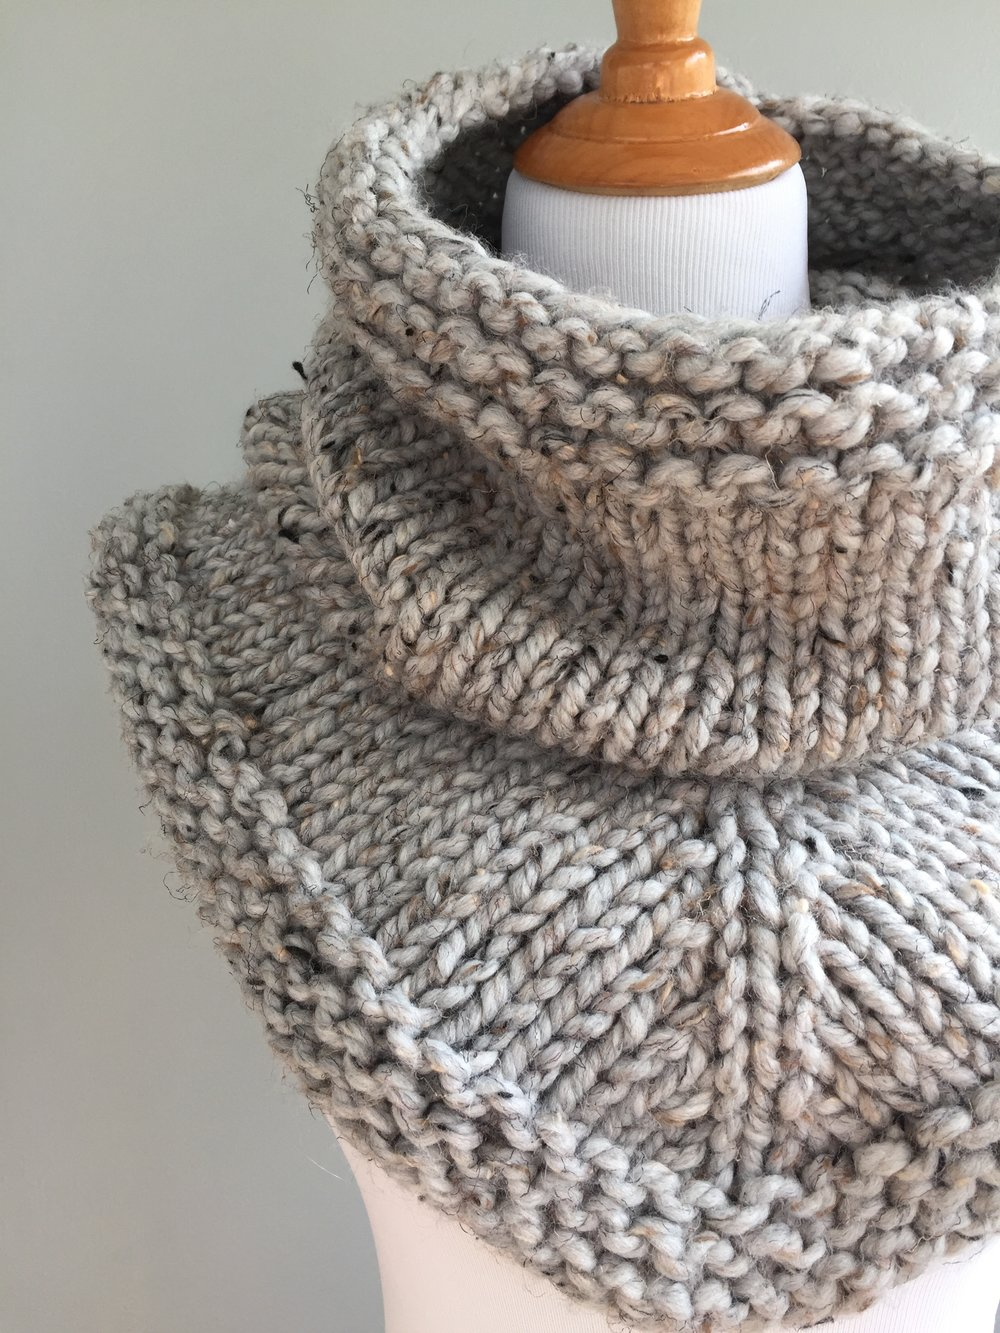 Knit Stockinette Bandana Cowl